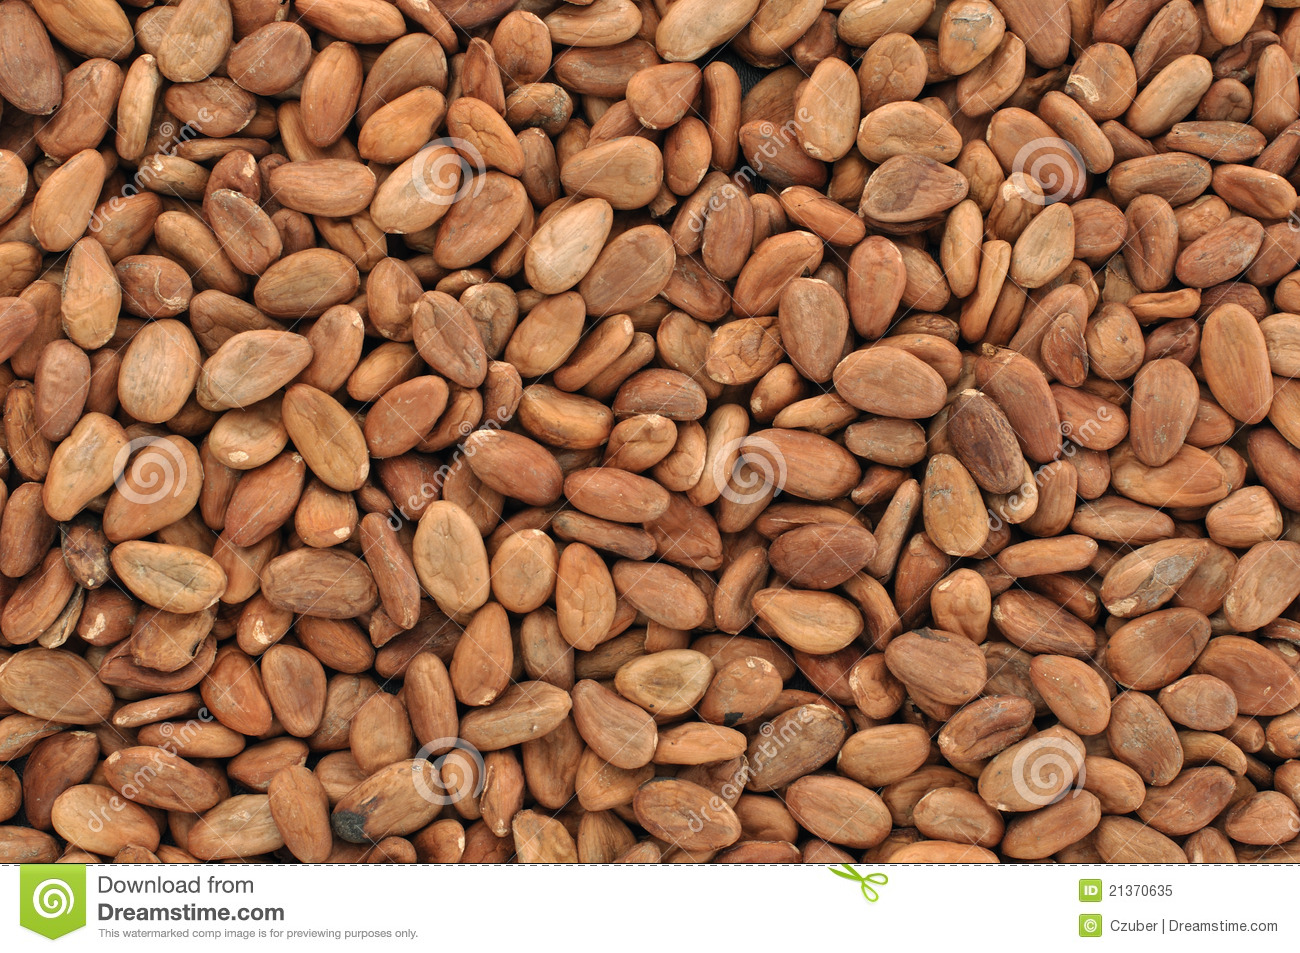 Cacao Beans Royalty Free Stock Photo - Image: 21370635